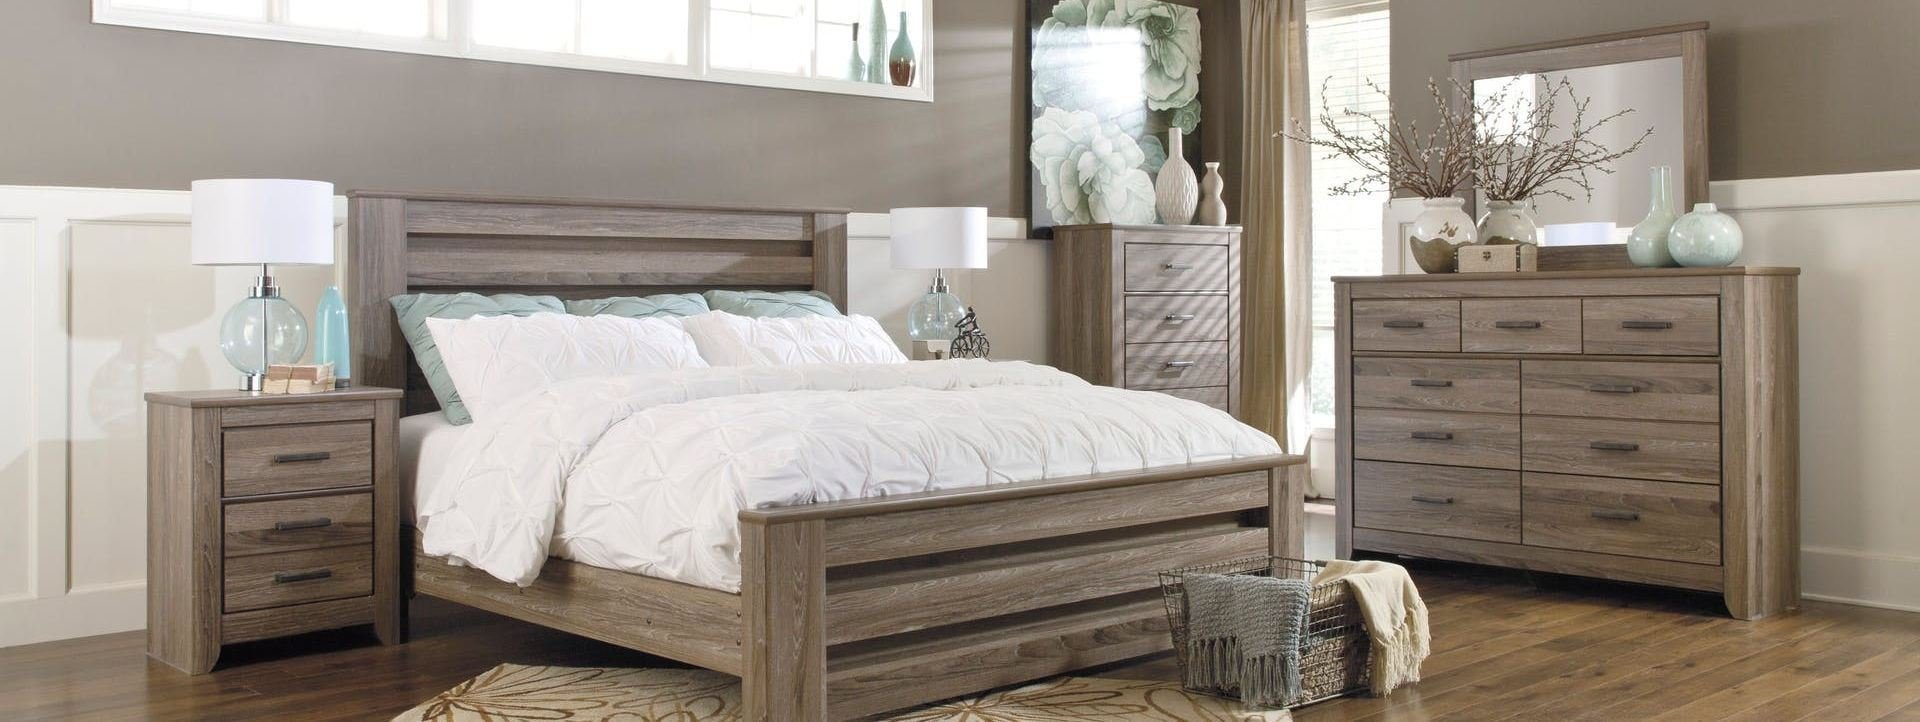 Best Bedroom Sets Cleveland Ohio Home Design Ideas With Pictures